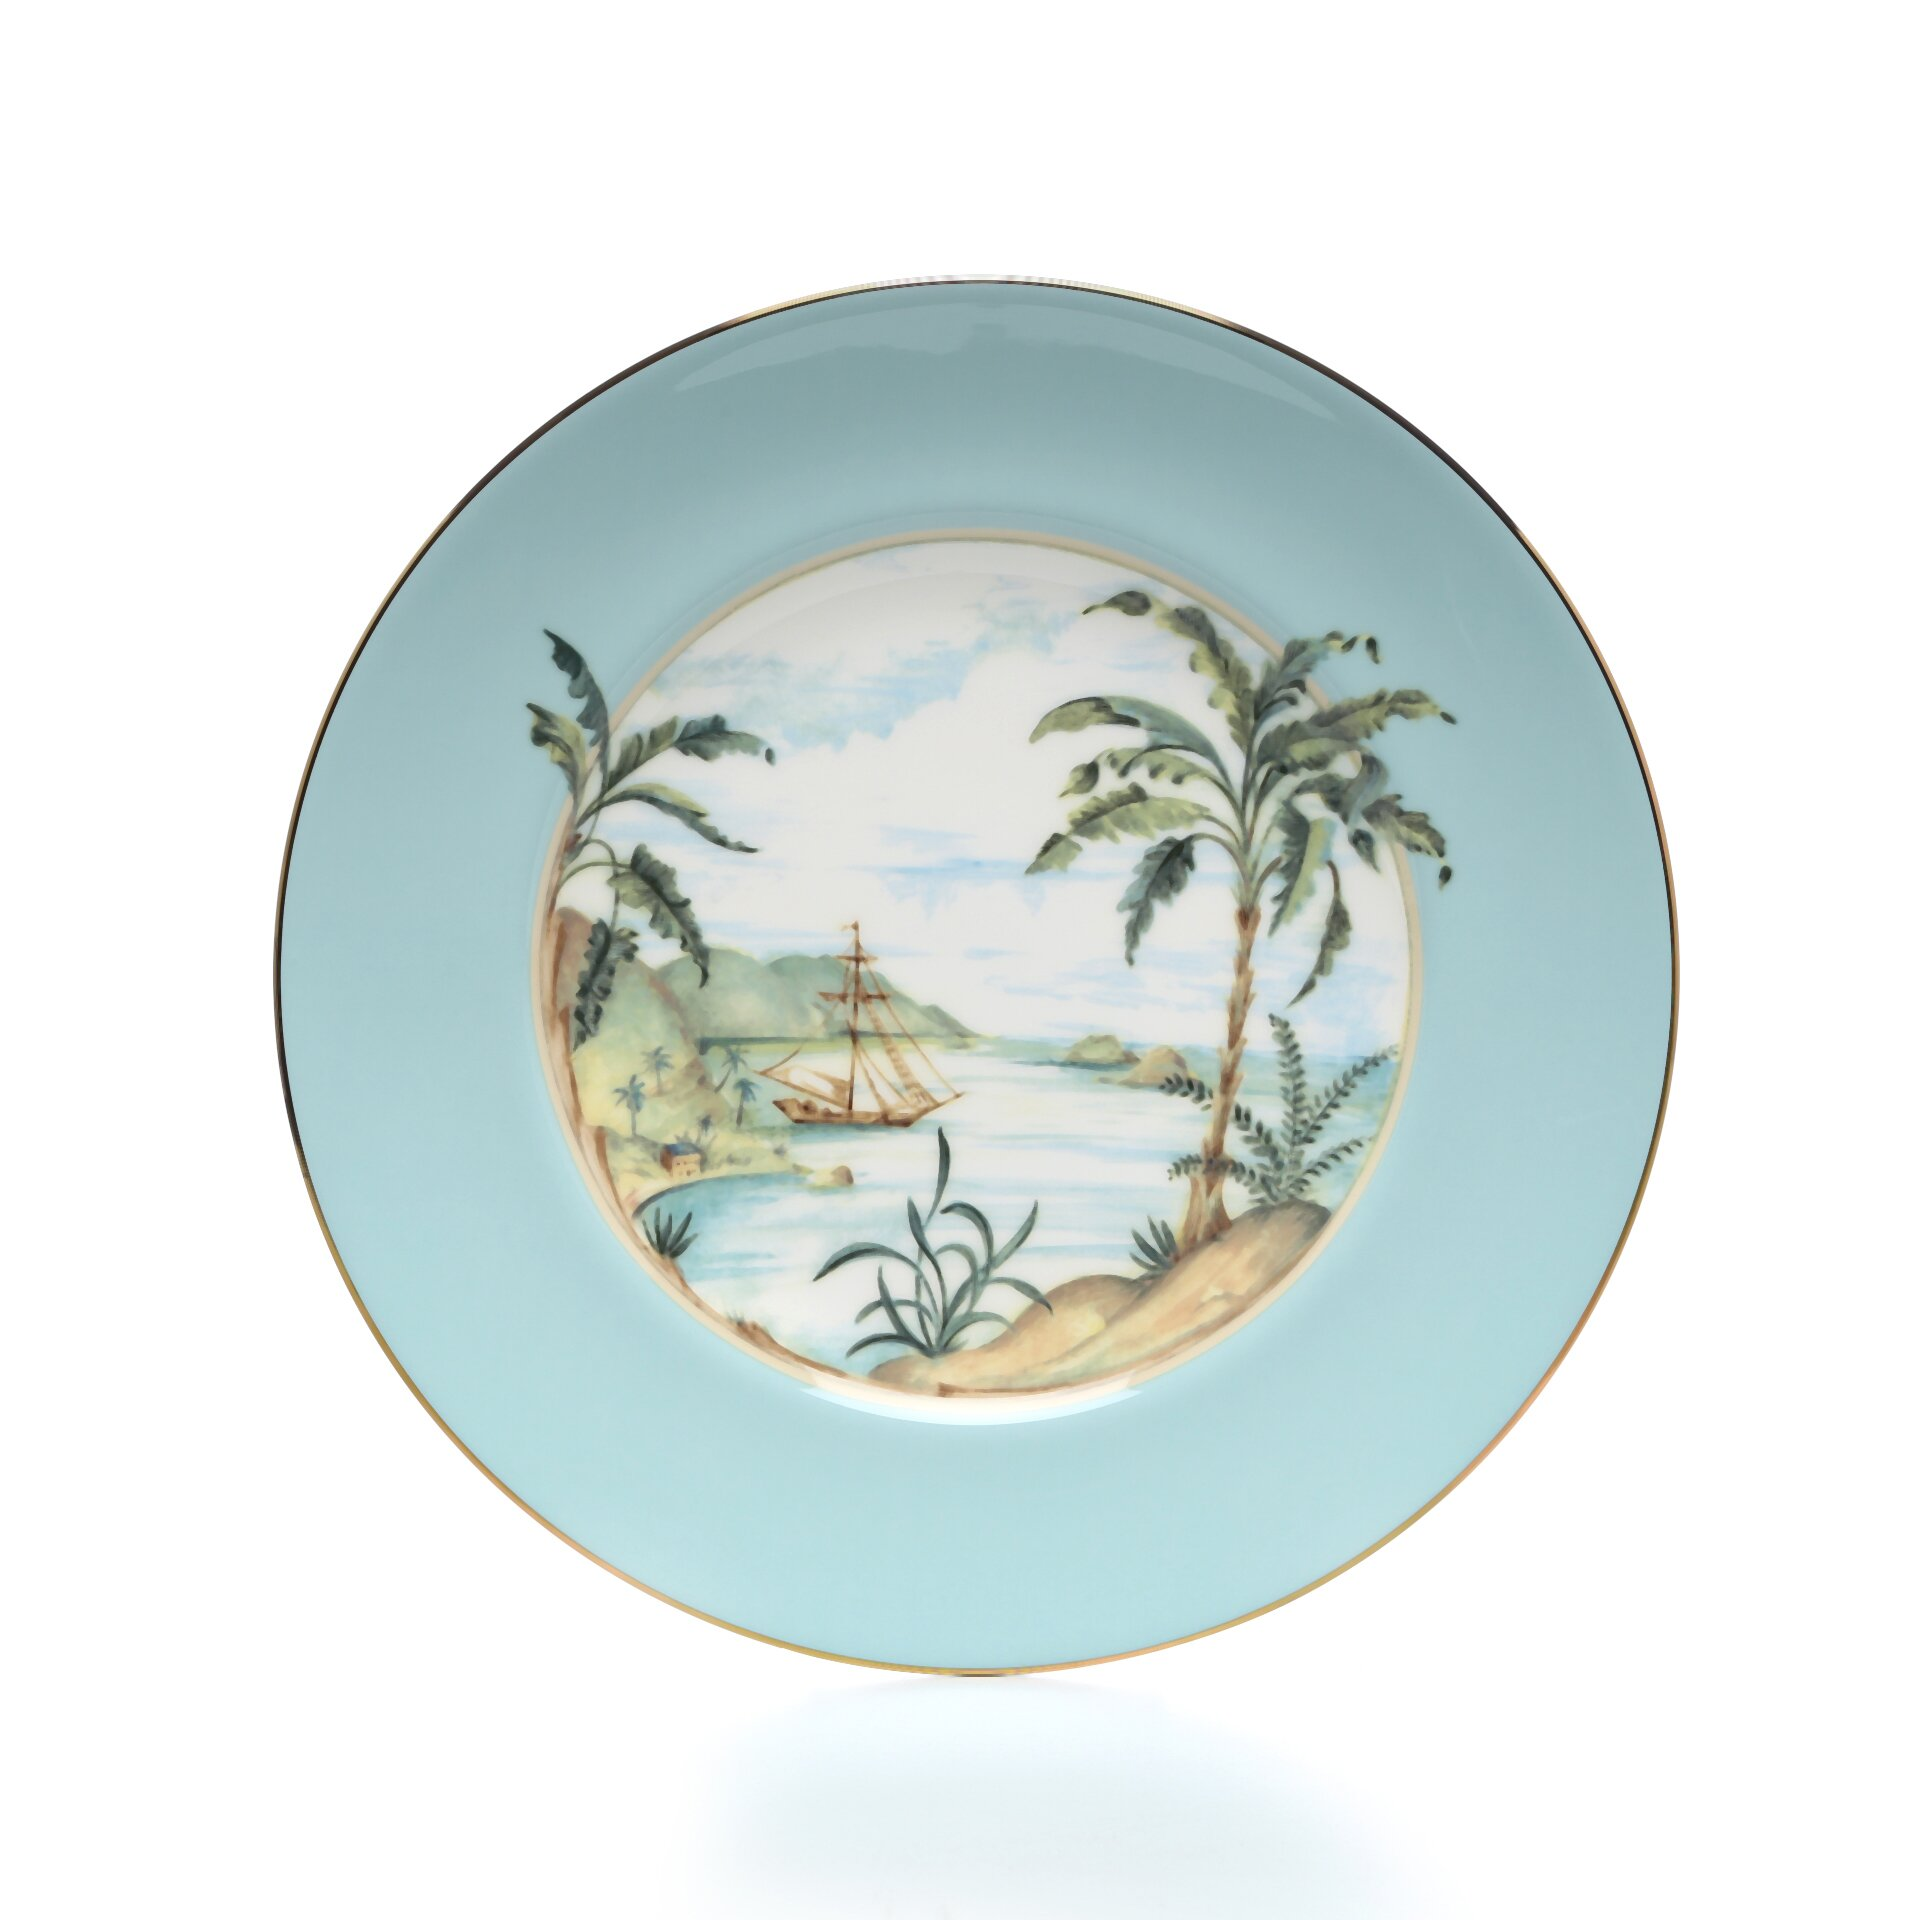 Lenox Colonial Tradewind 9 Quot Charger Plate Amp Reviews Wayfair